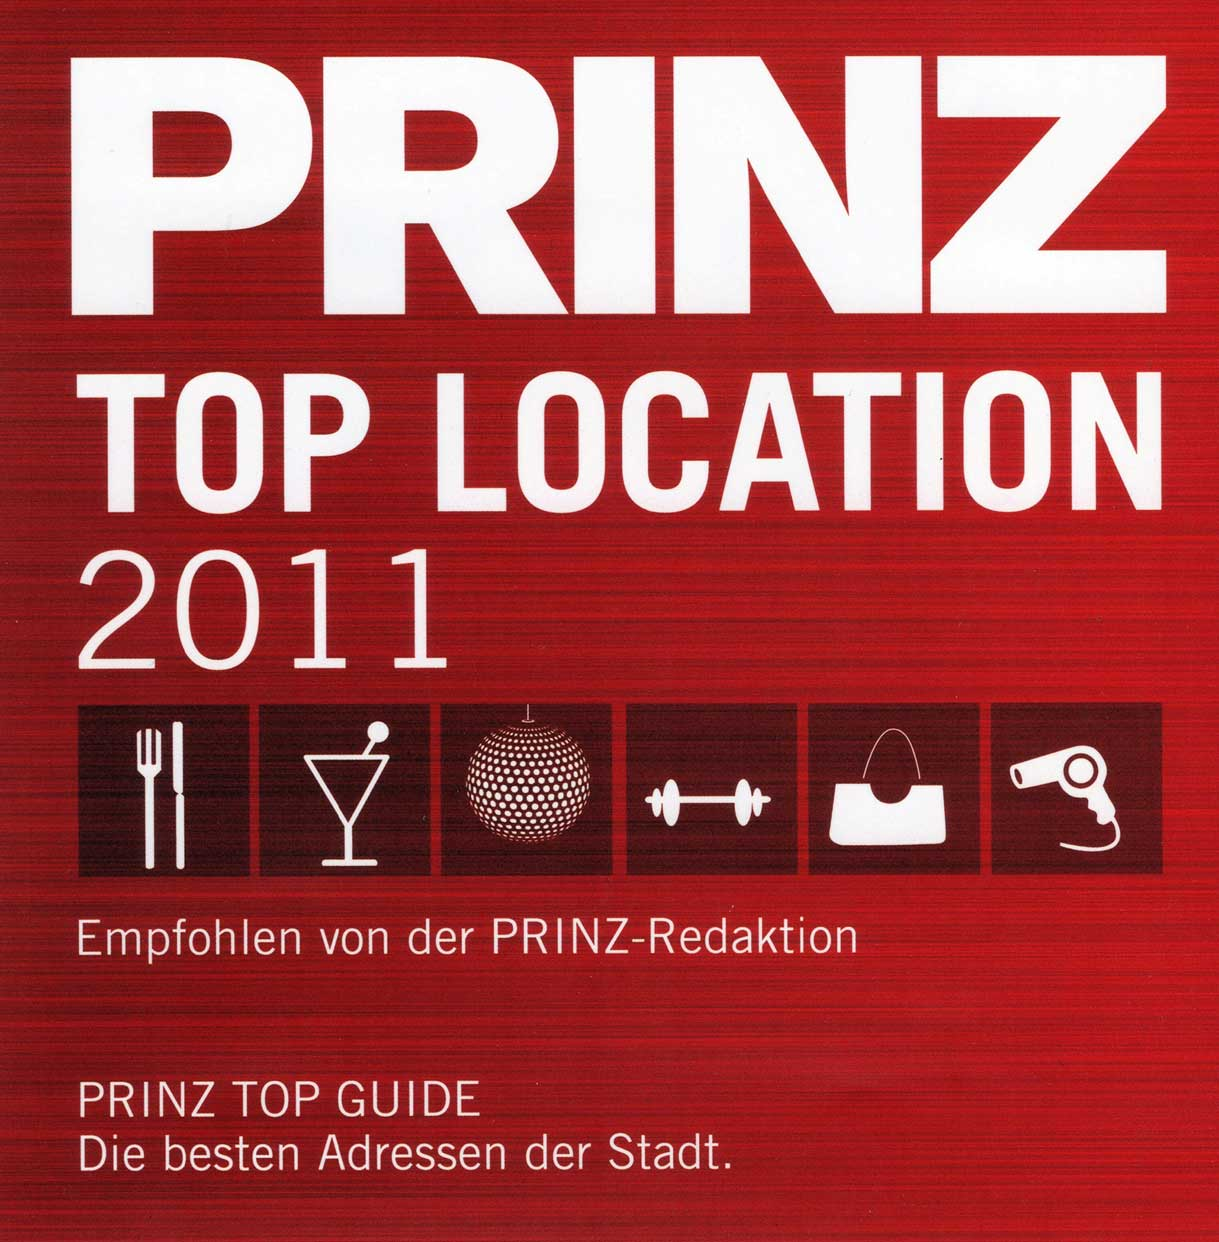 Prinz Top Location 2011